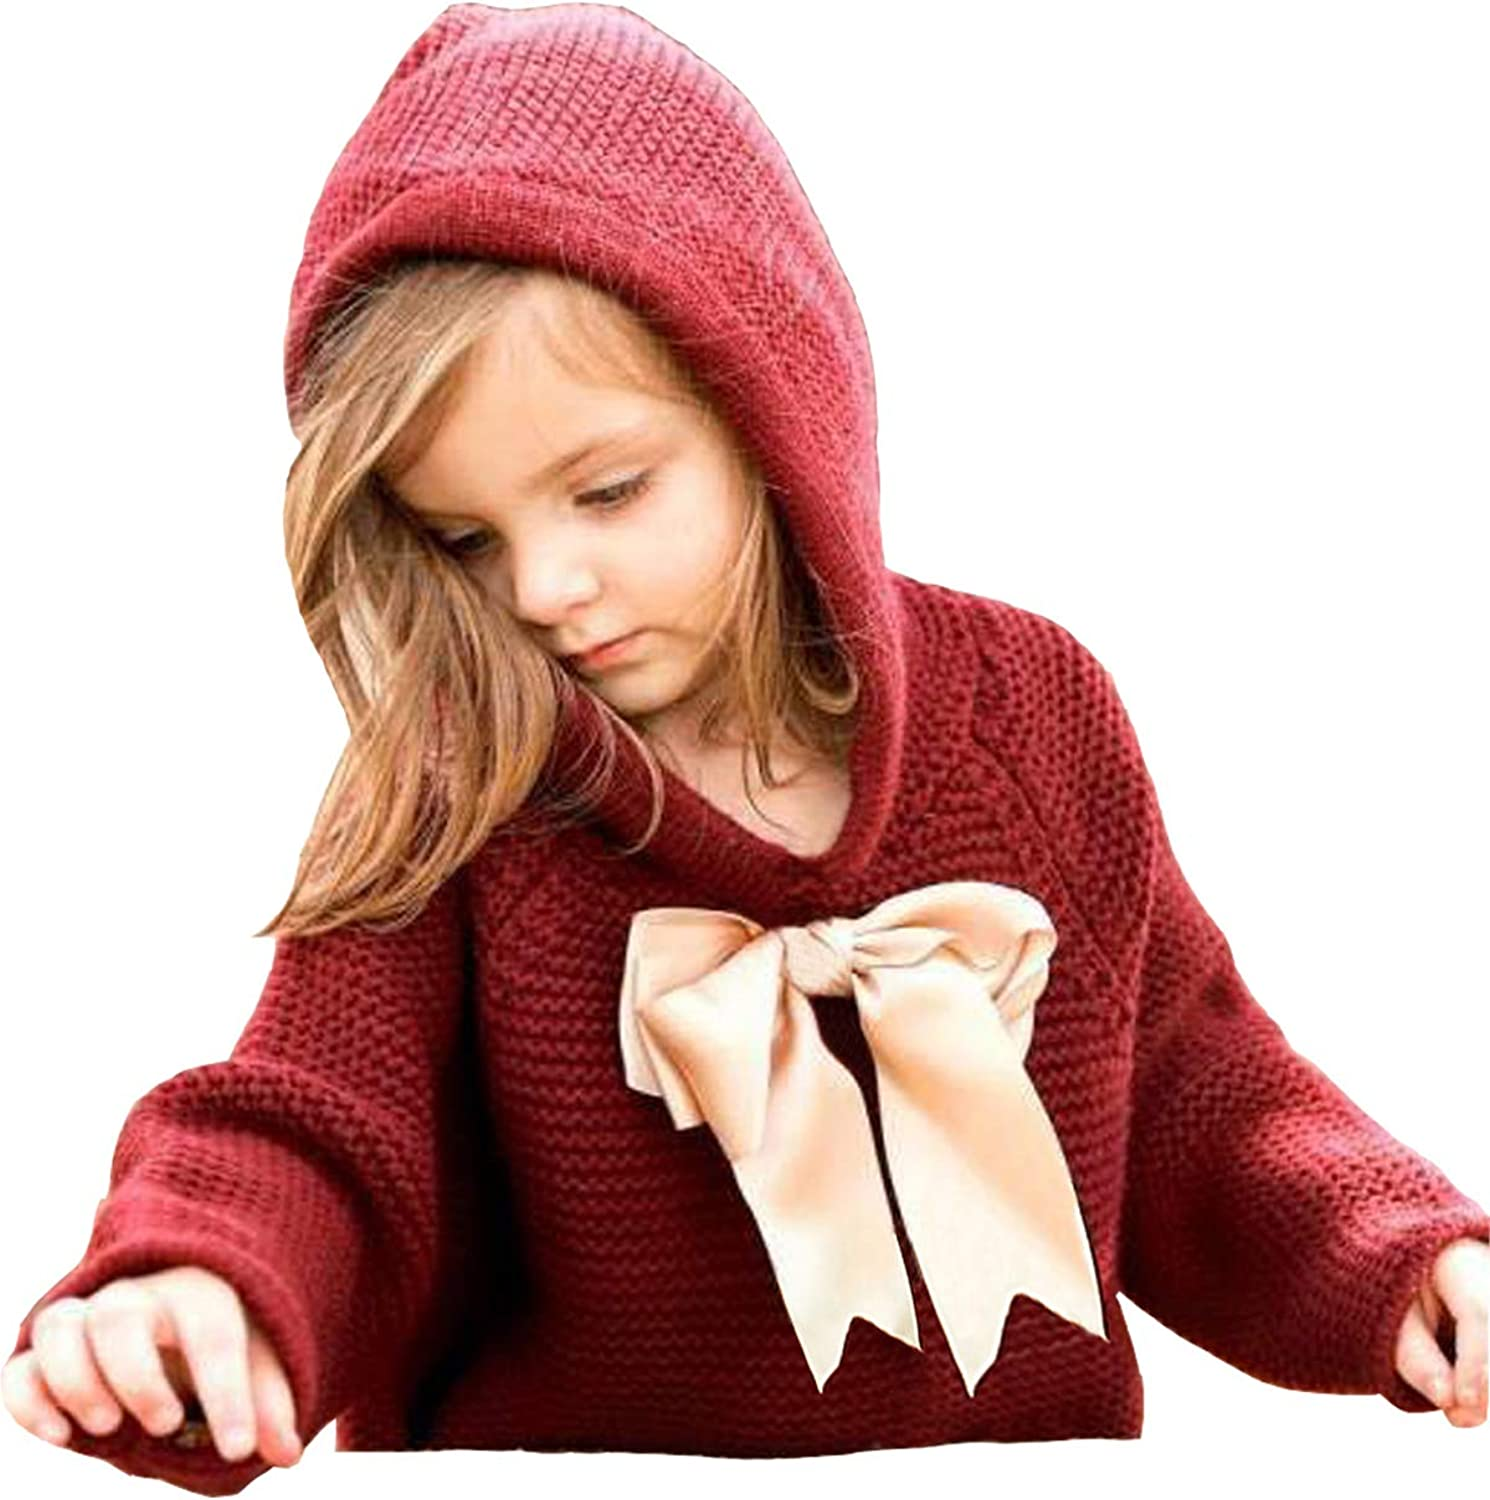 ReachMe Baby Girl Hooded Pullover Sweater Knitted Cardigan Coat Winter Outerwear